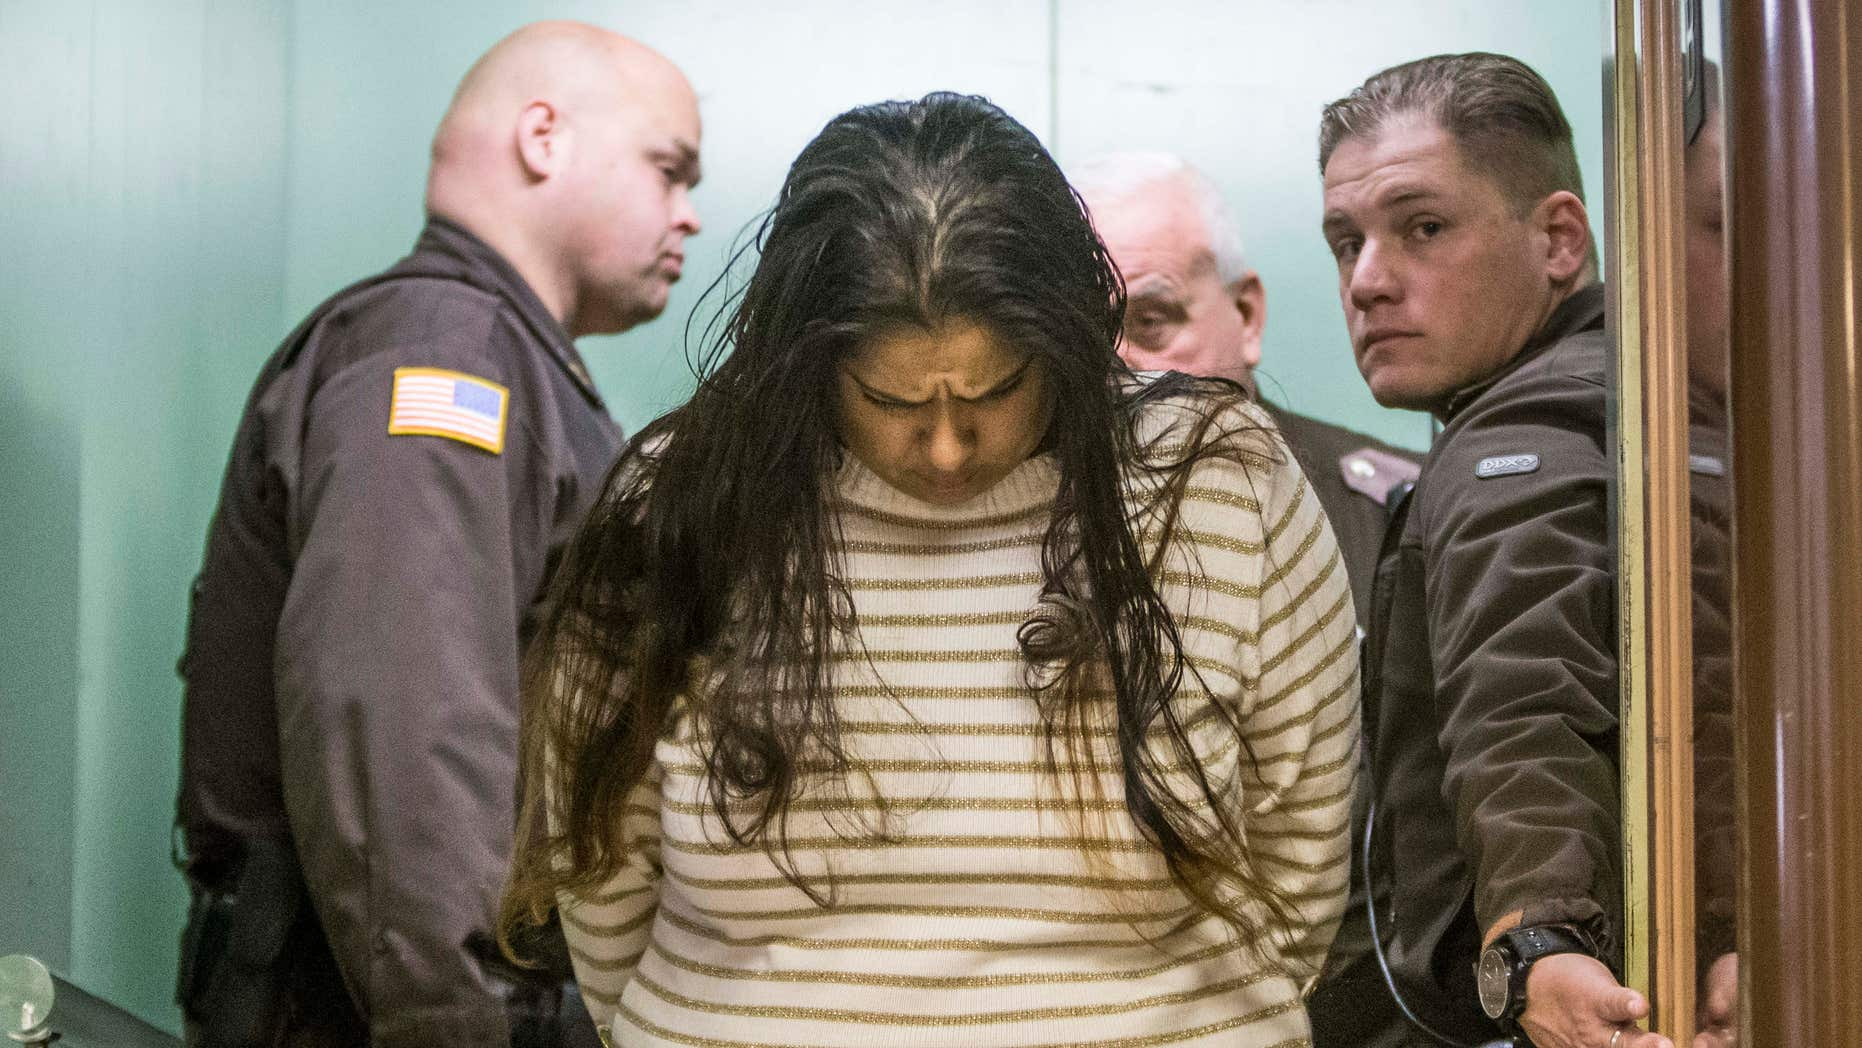 March 30, 2015: Purvi Patel is taken into custody after being sentenced to 20 years in prison for feticide and neglect of a dependent.